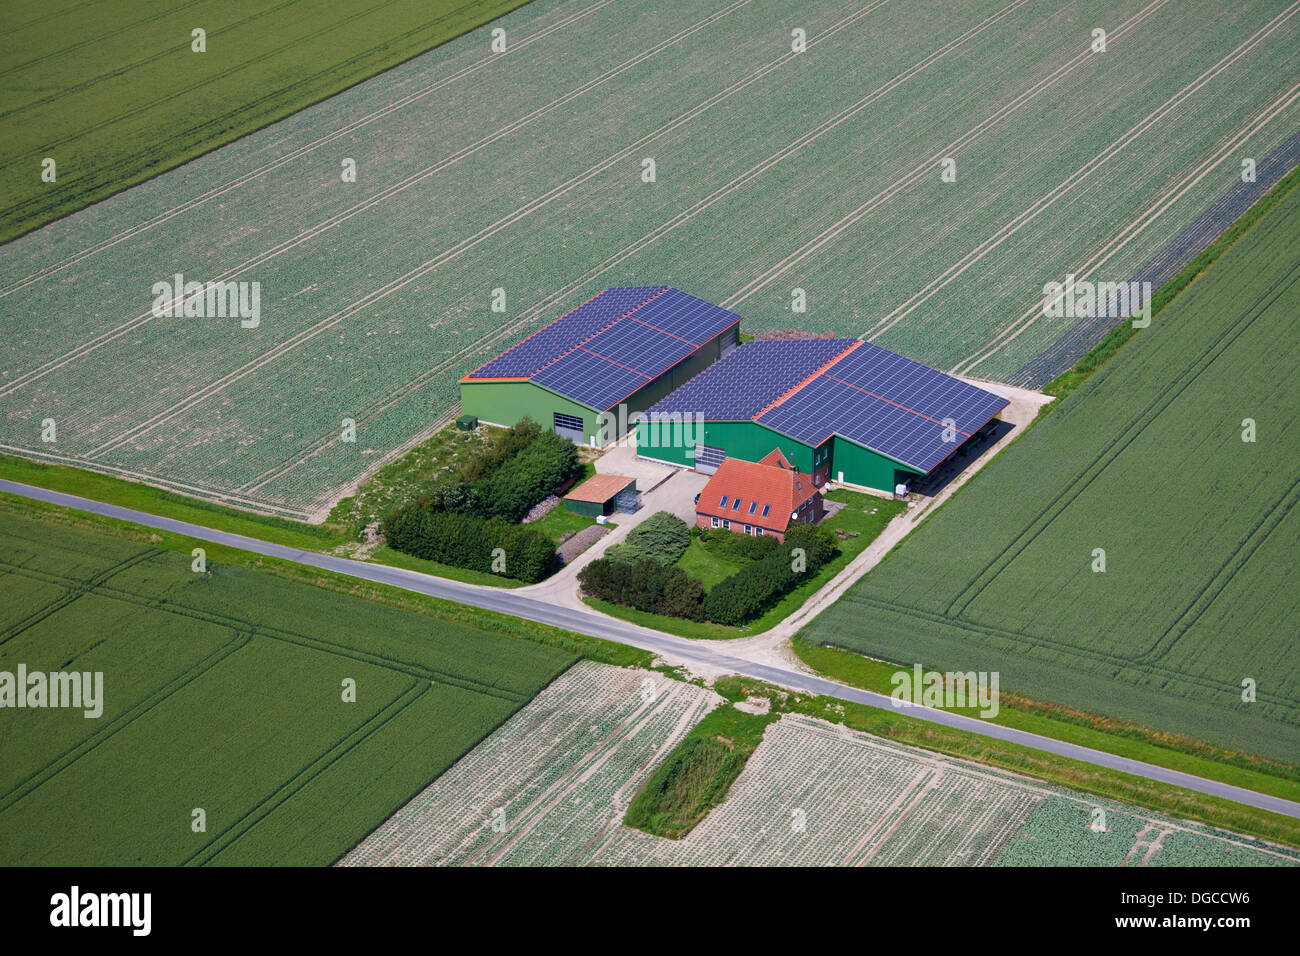 Aerial view over field and photovoltaic solar panels on roof of agricultural buildings for alternative power supply of farm - Stock Image